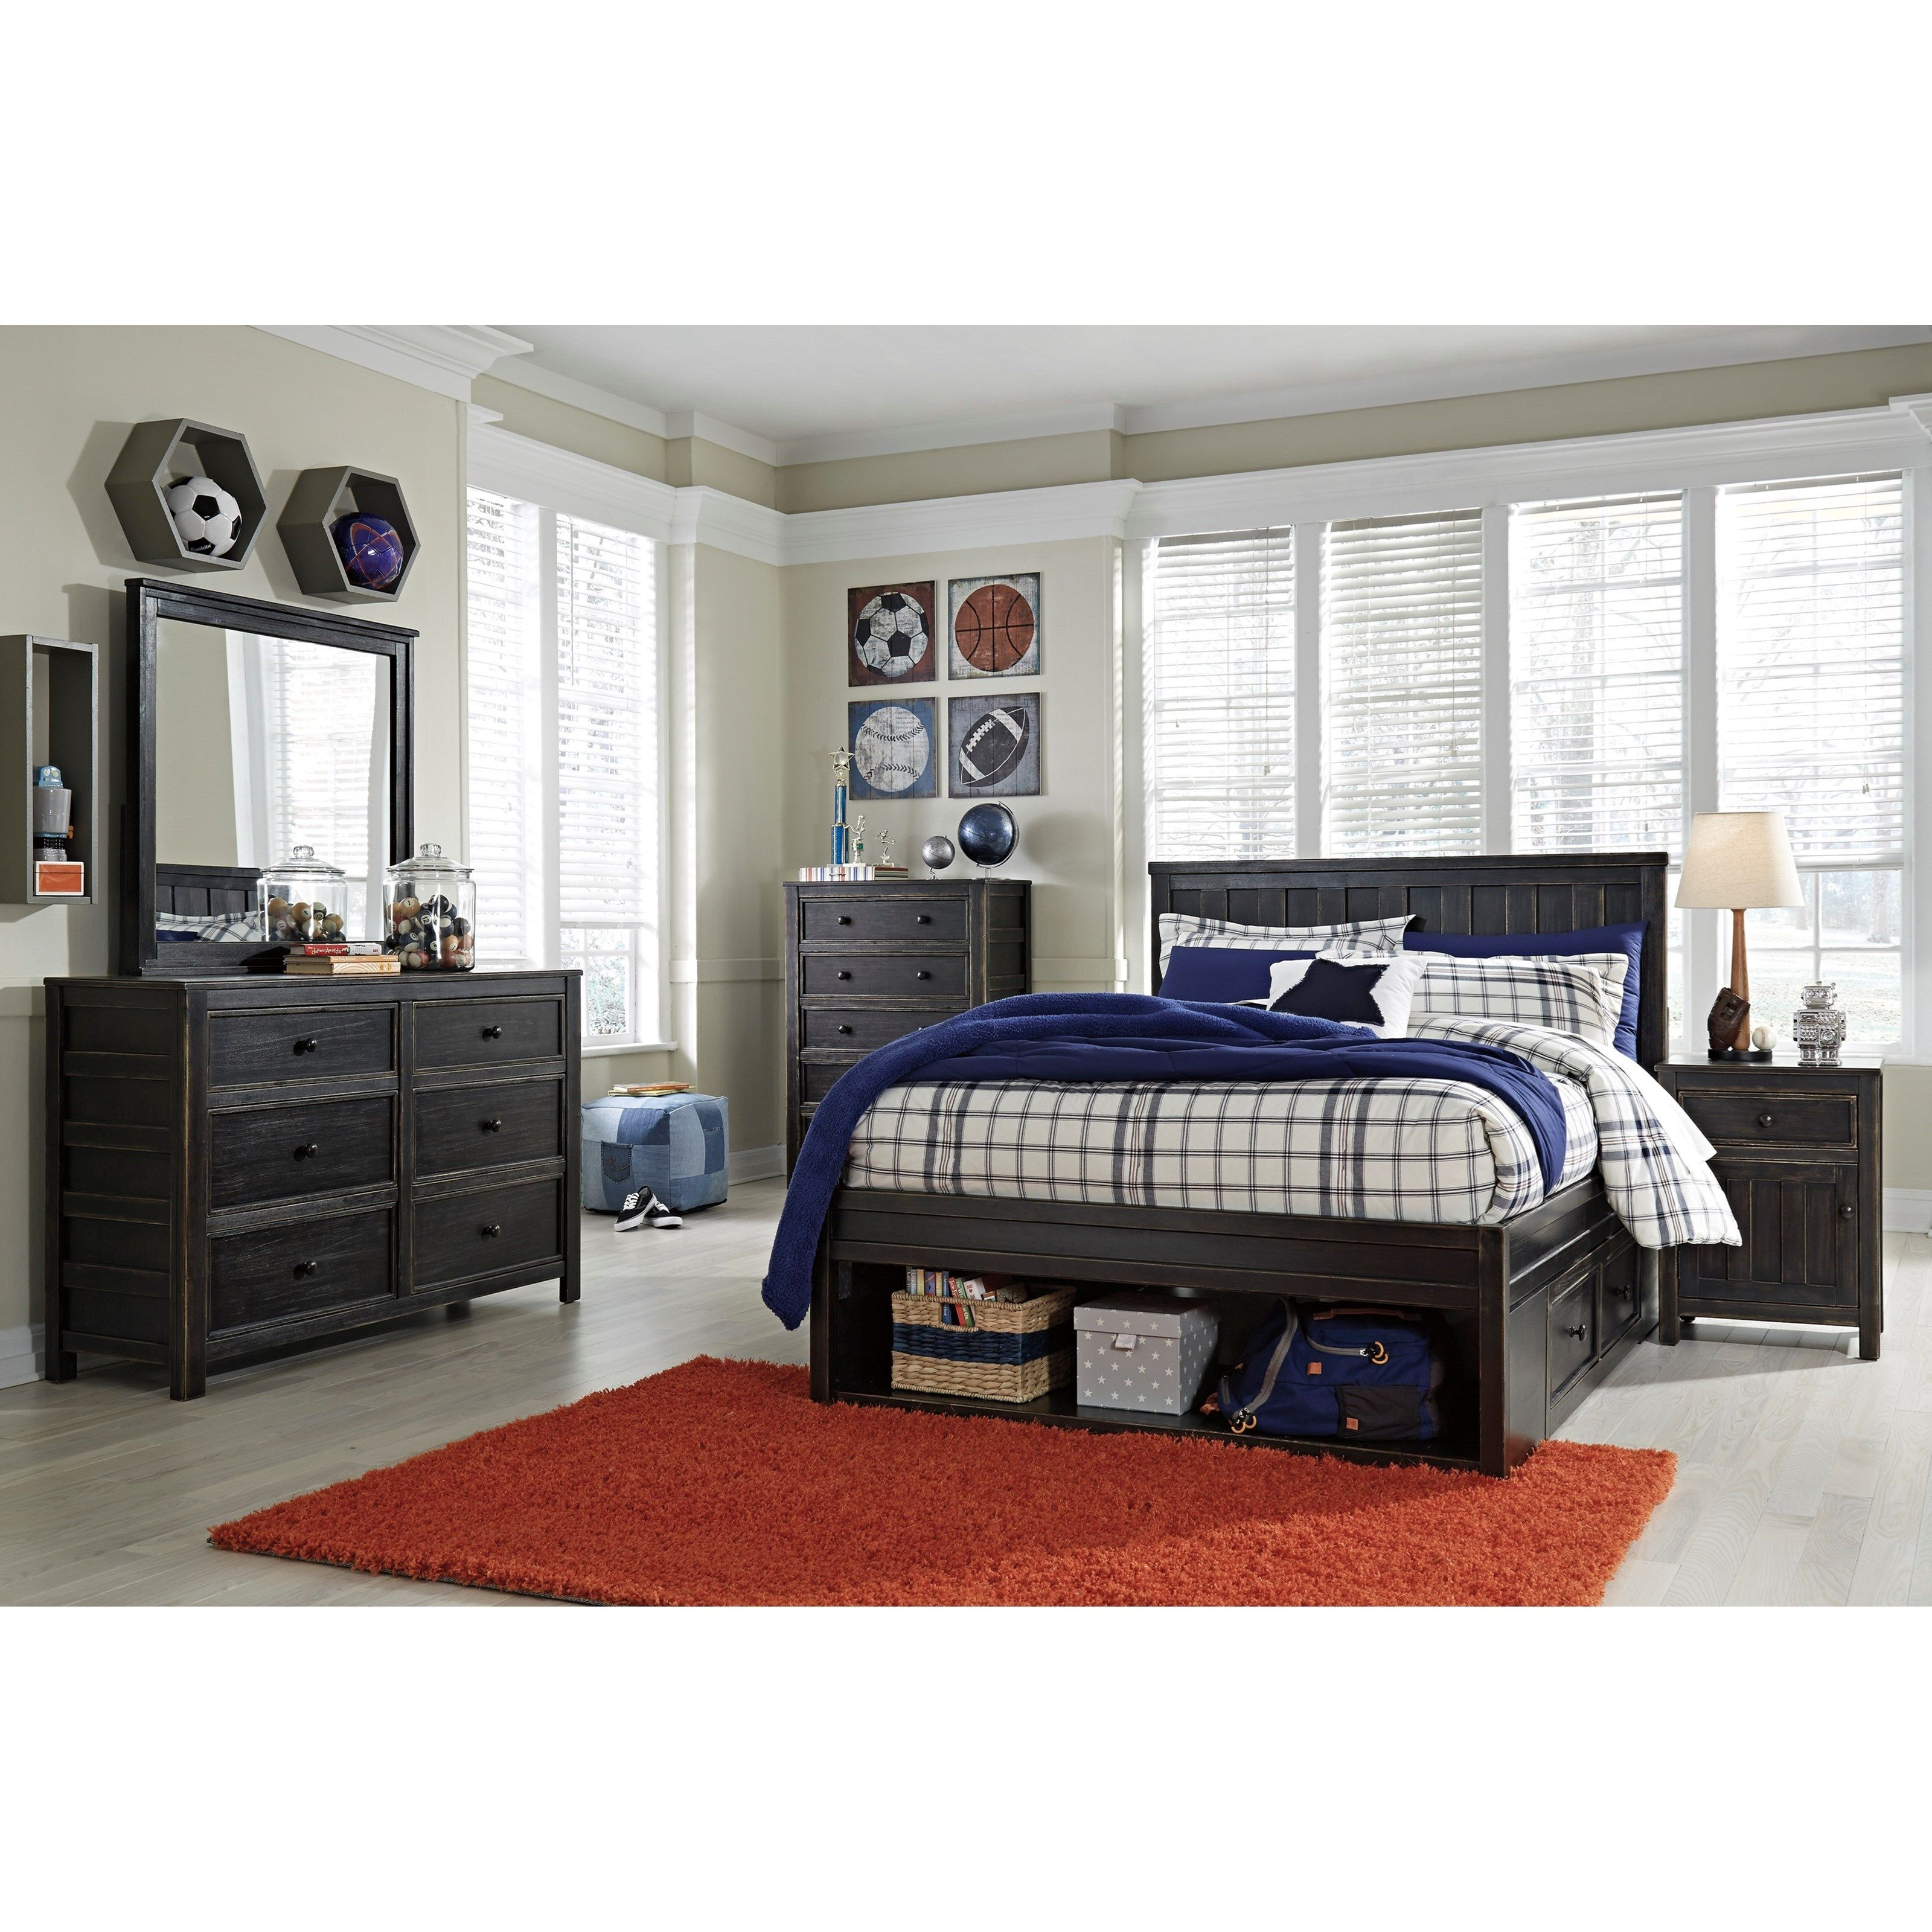 Jaysom Twin Bedroom Group by Signature Design by Ashley